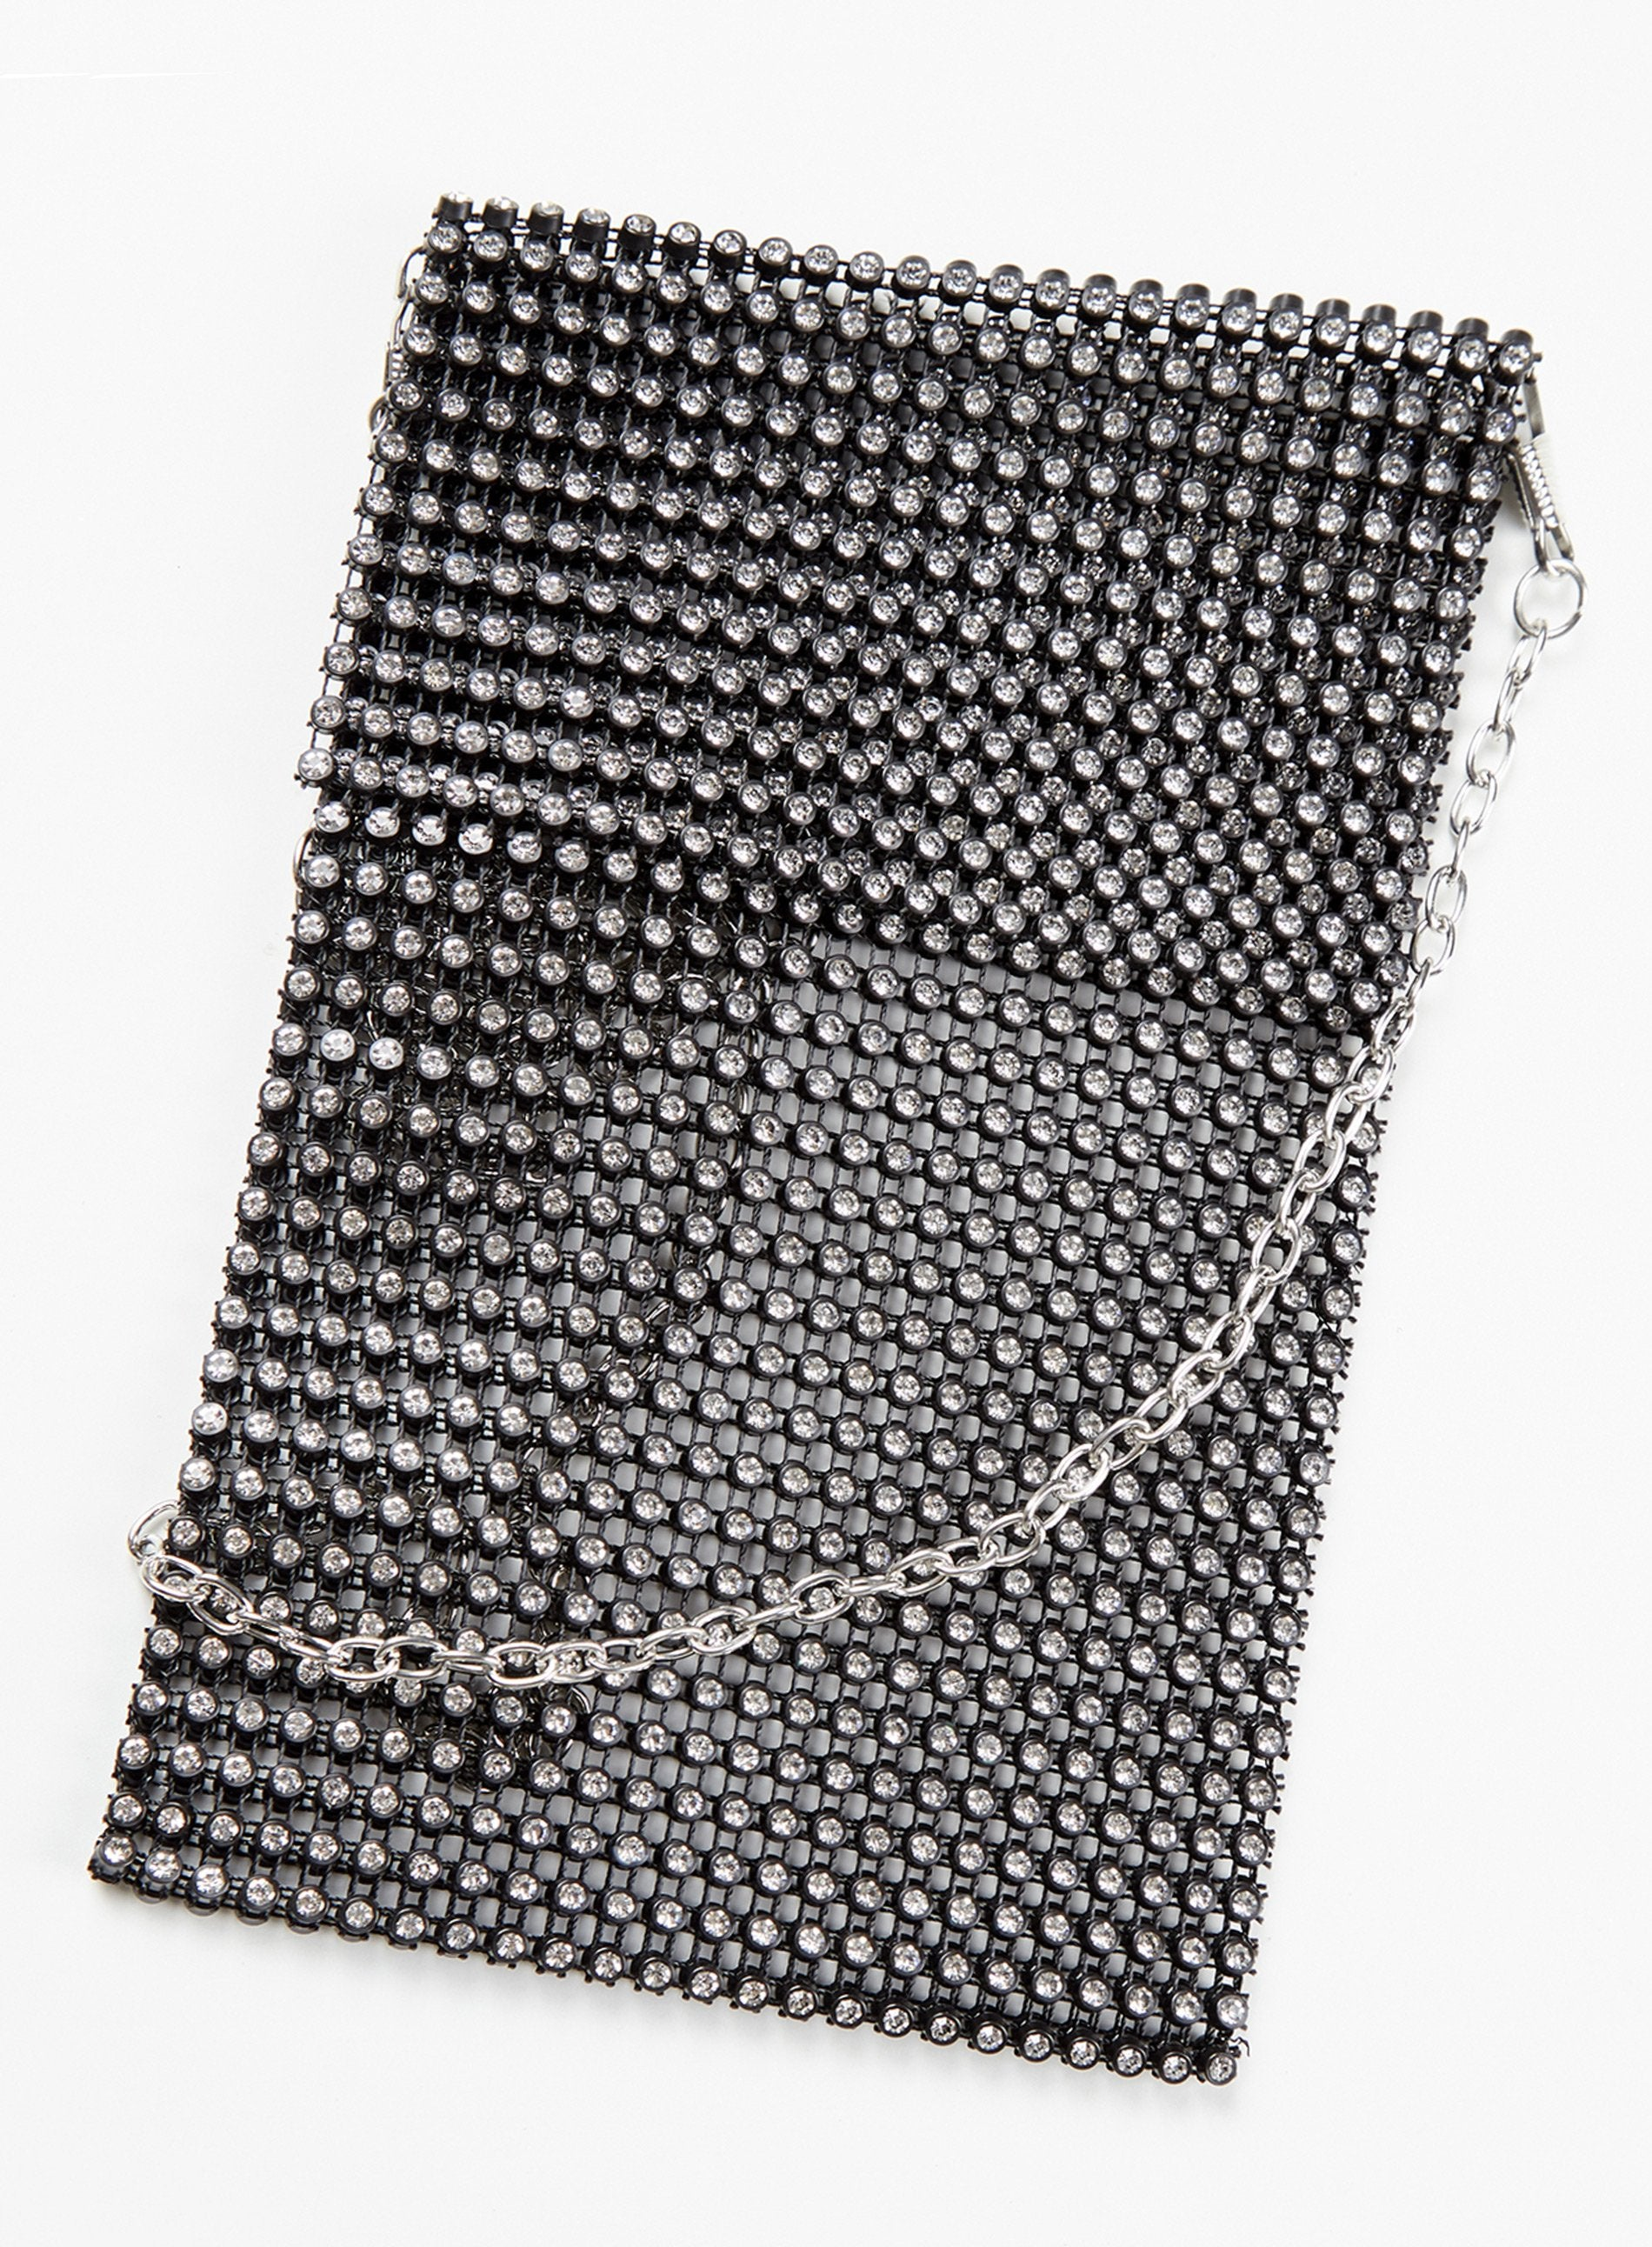 GLAMOUR - Black Diamanté Mesh Shoulder Bag